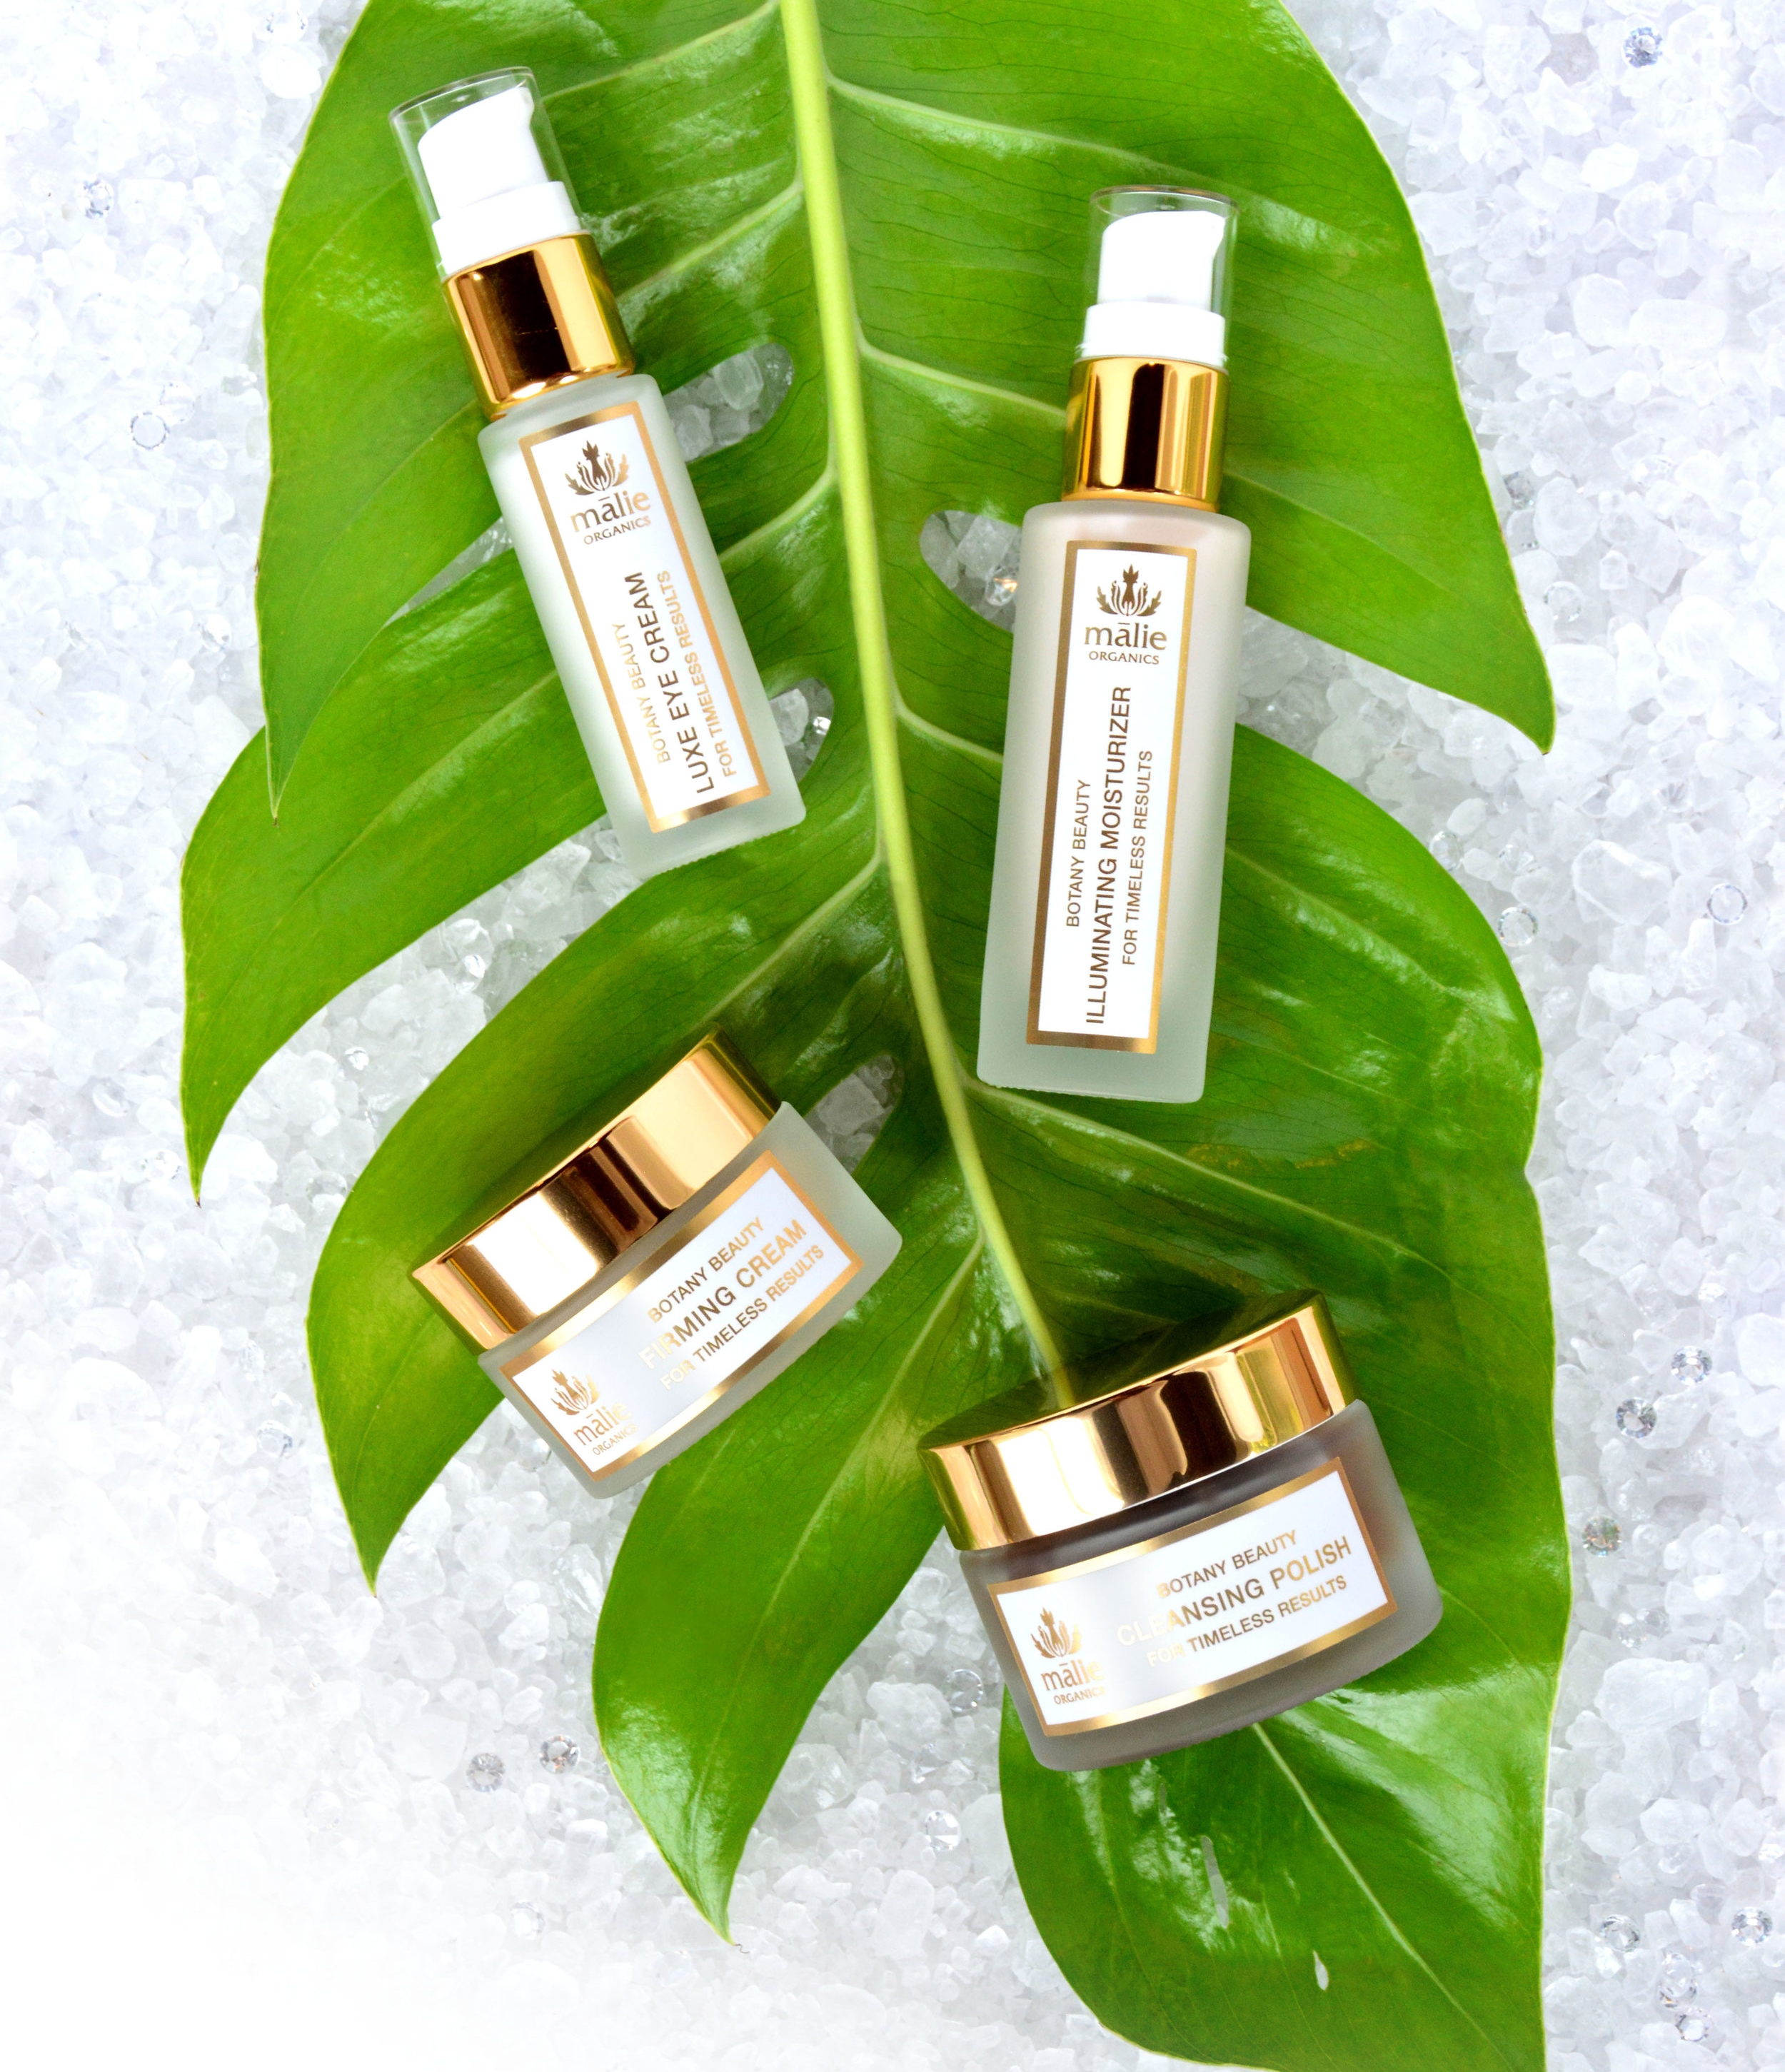 MODERN LUXURY HAWAII: ALOHA CHIC - Showcasing the new Malie boutique at Alohilani, and its new skincare collection, Botany Beauty.